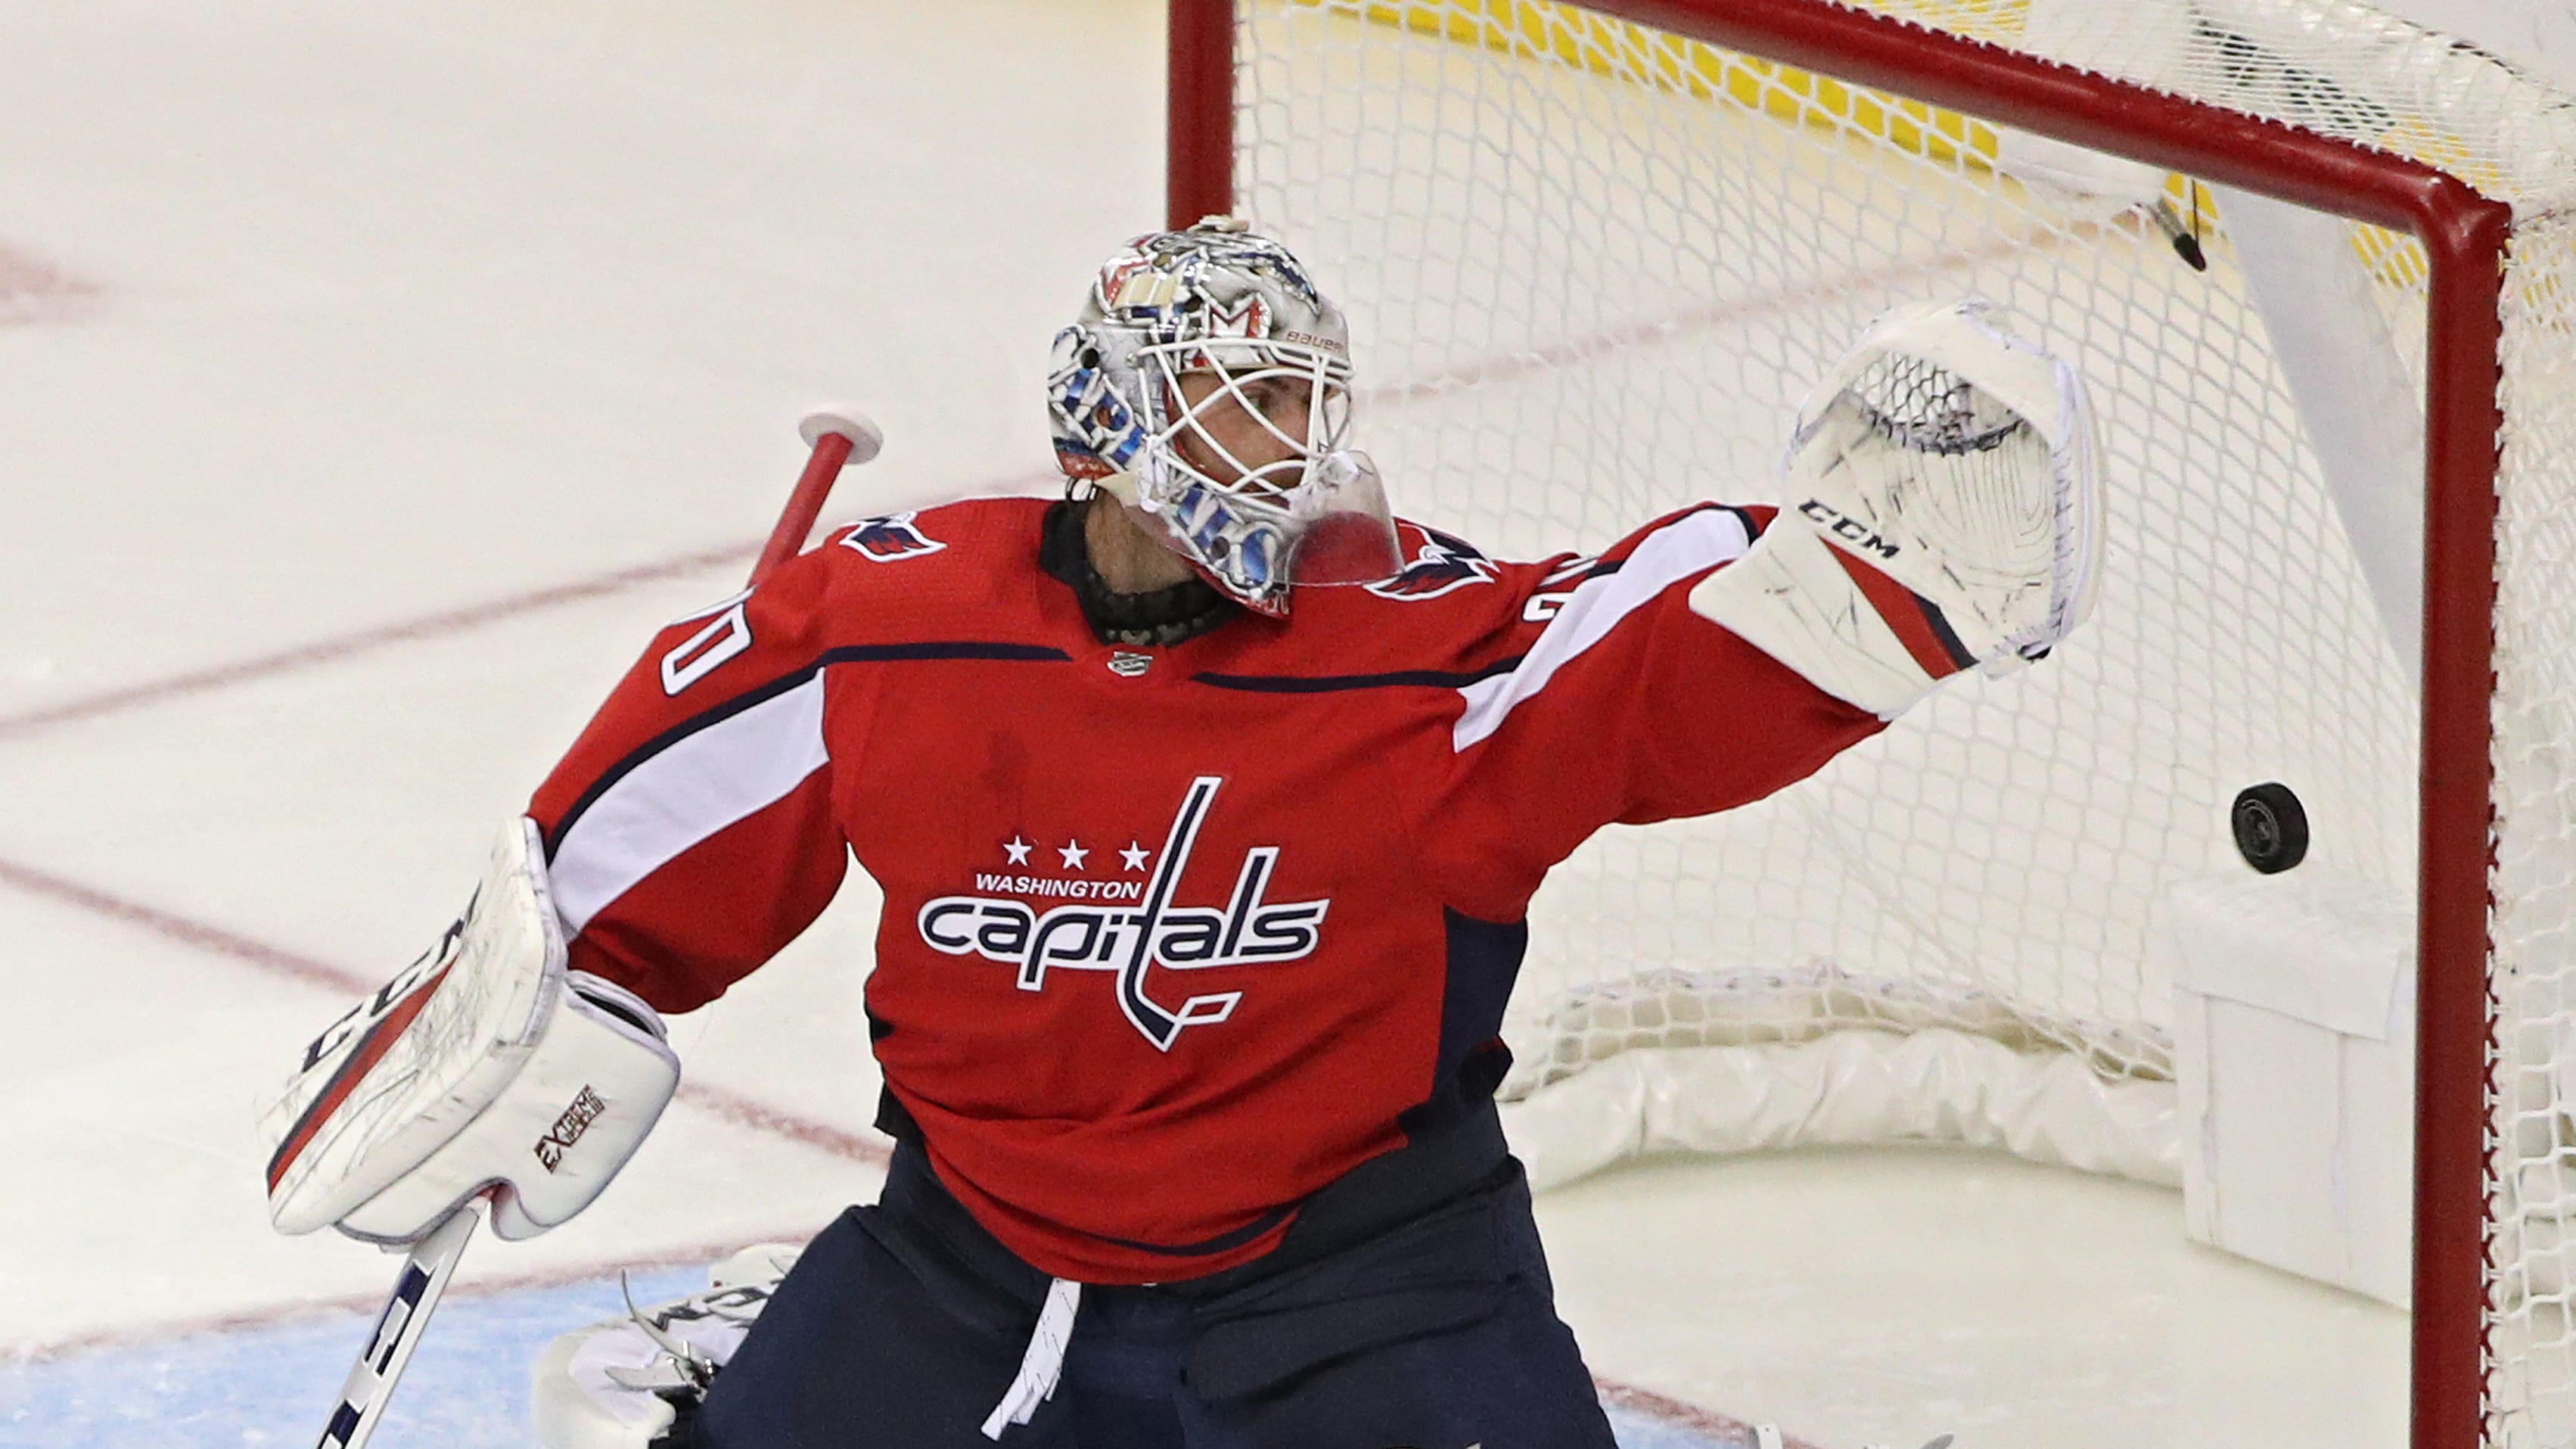 Puck Kid 2: Another Capitals player insists young fan gets prize after man intercepts toss